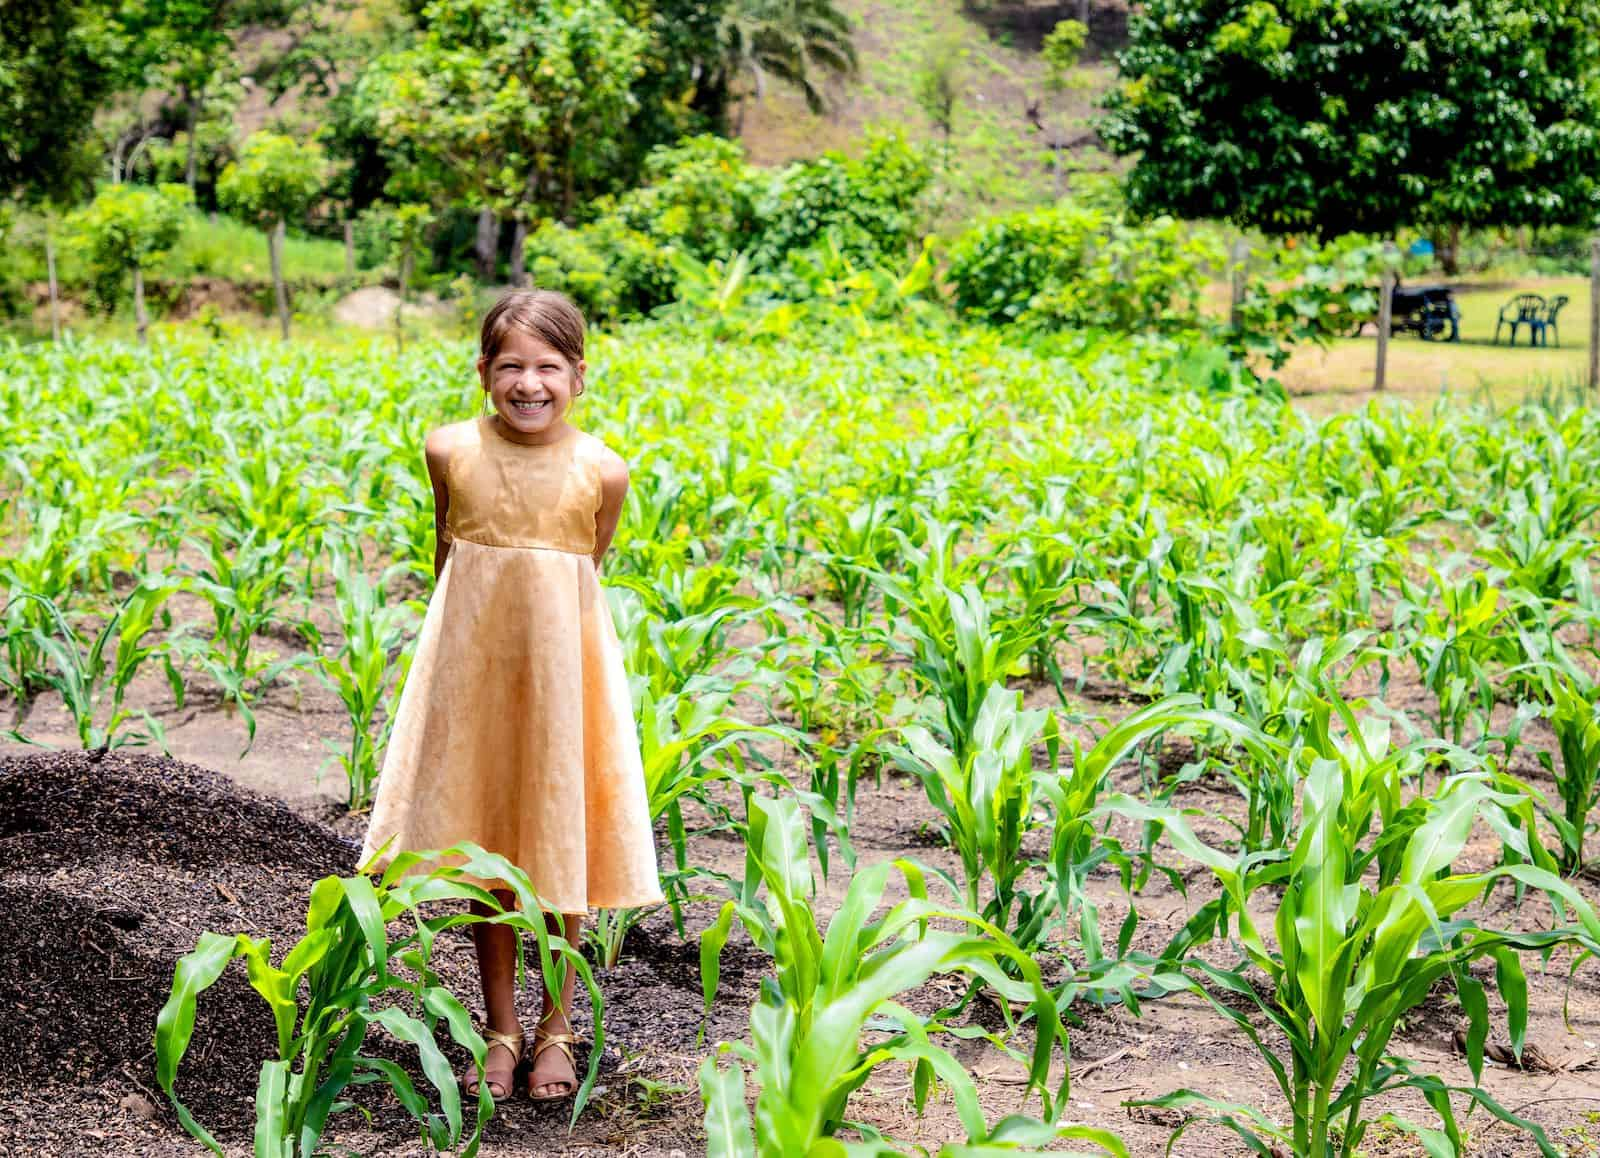 A young girl in a gold dress stands with her hands behind her back, smiling, in a large field with small corn plants growing in it.